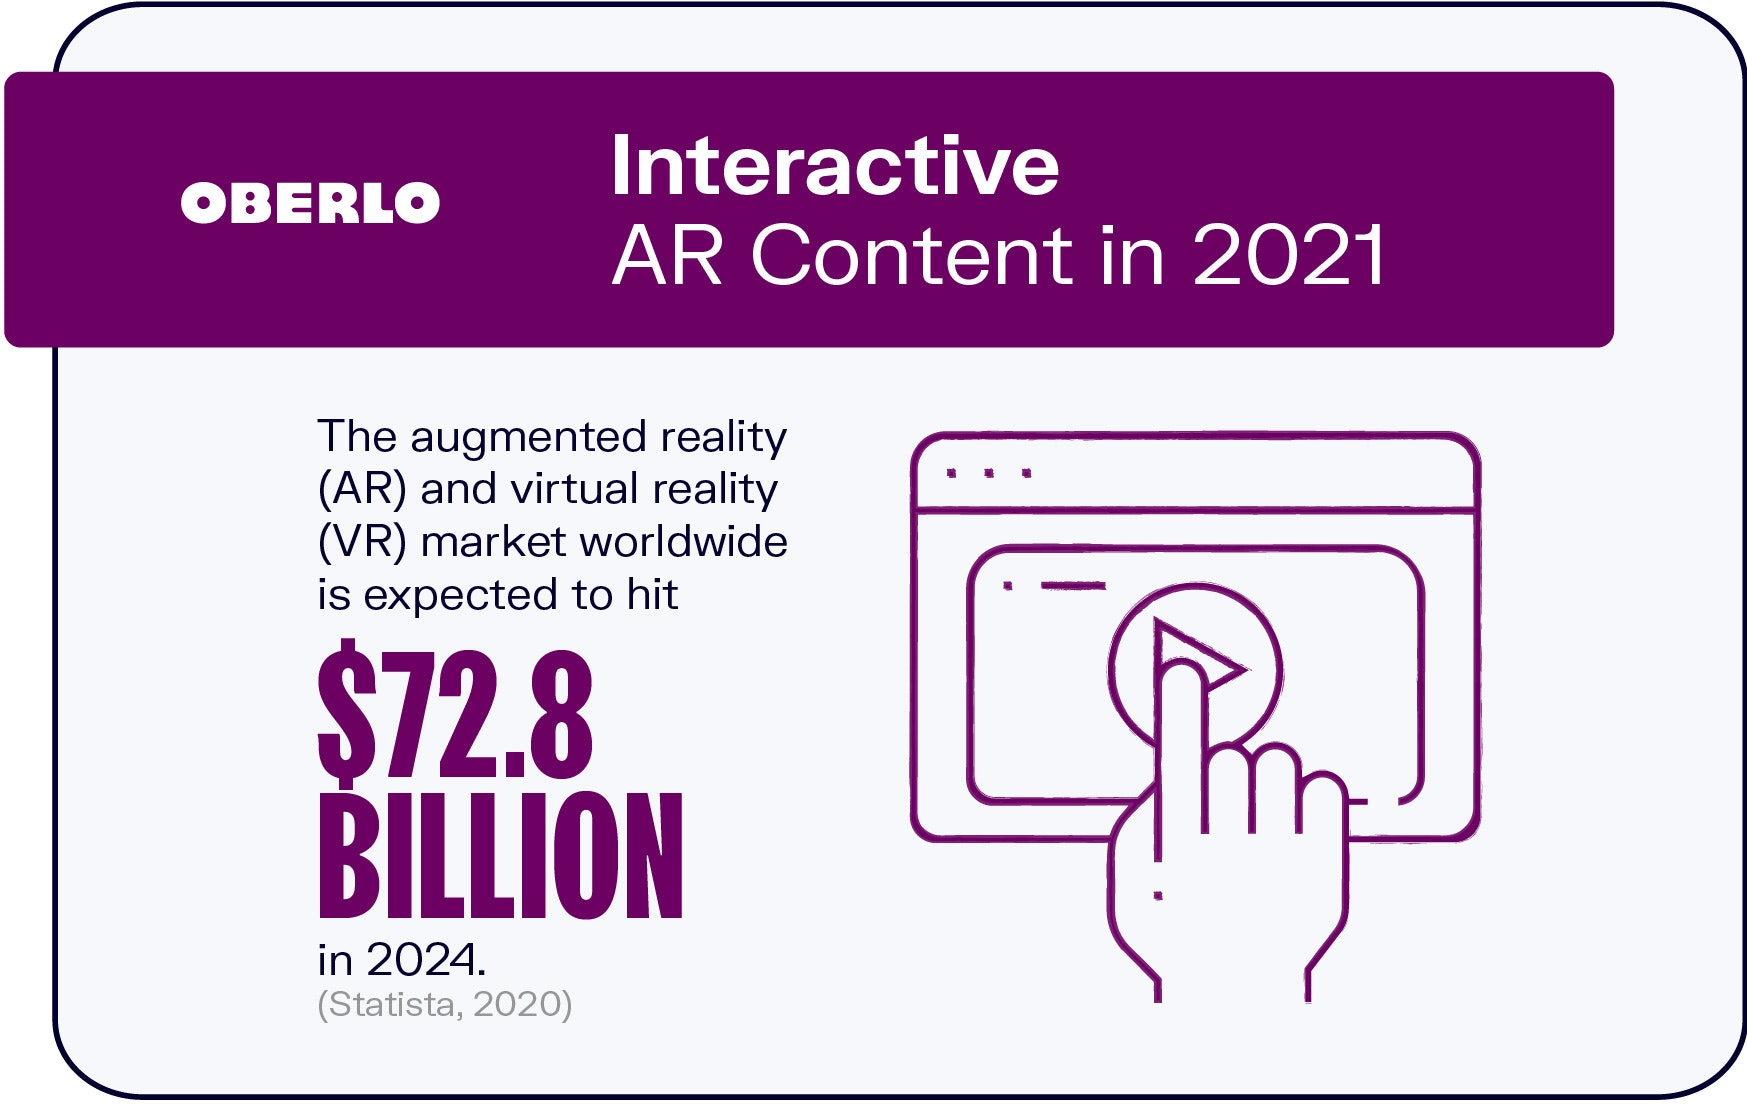 Interactive AR Content in 2021